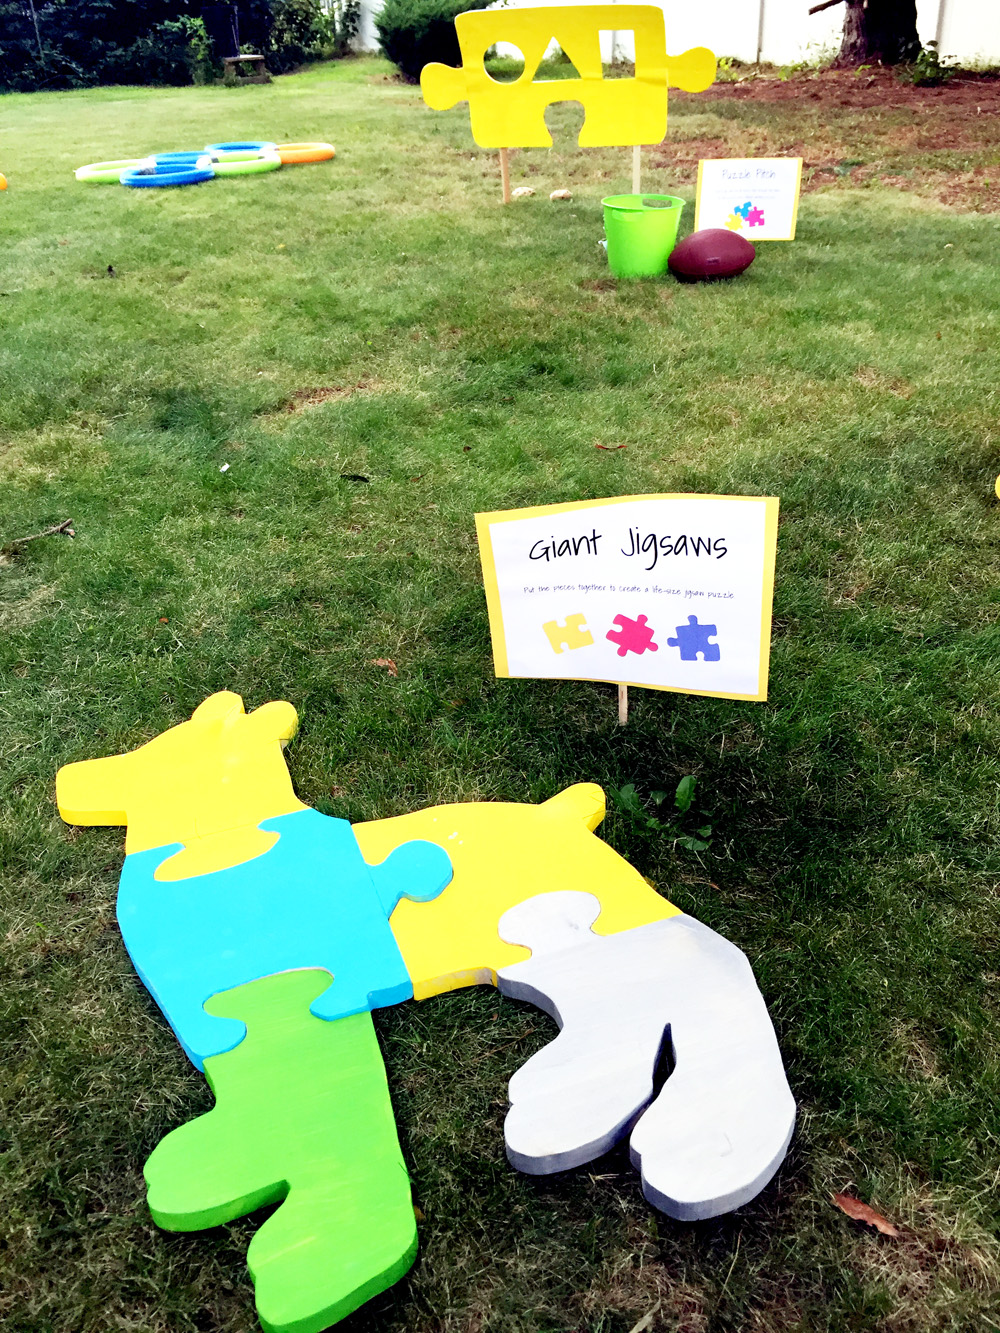 How to Make a Giant Wooden Puzzle - Fun Backyard Activity